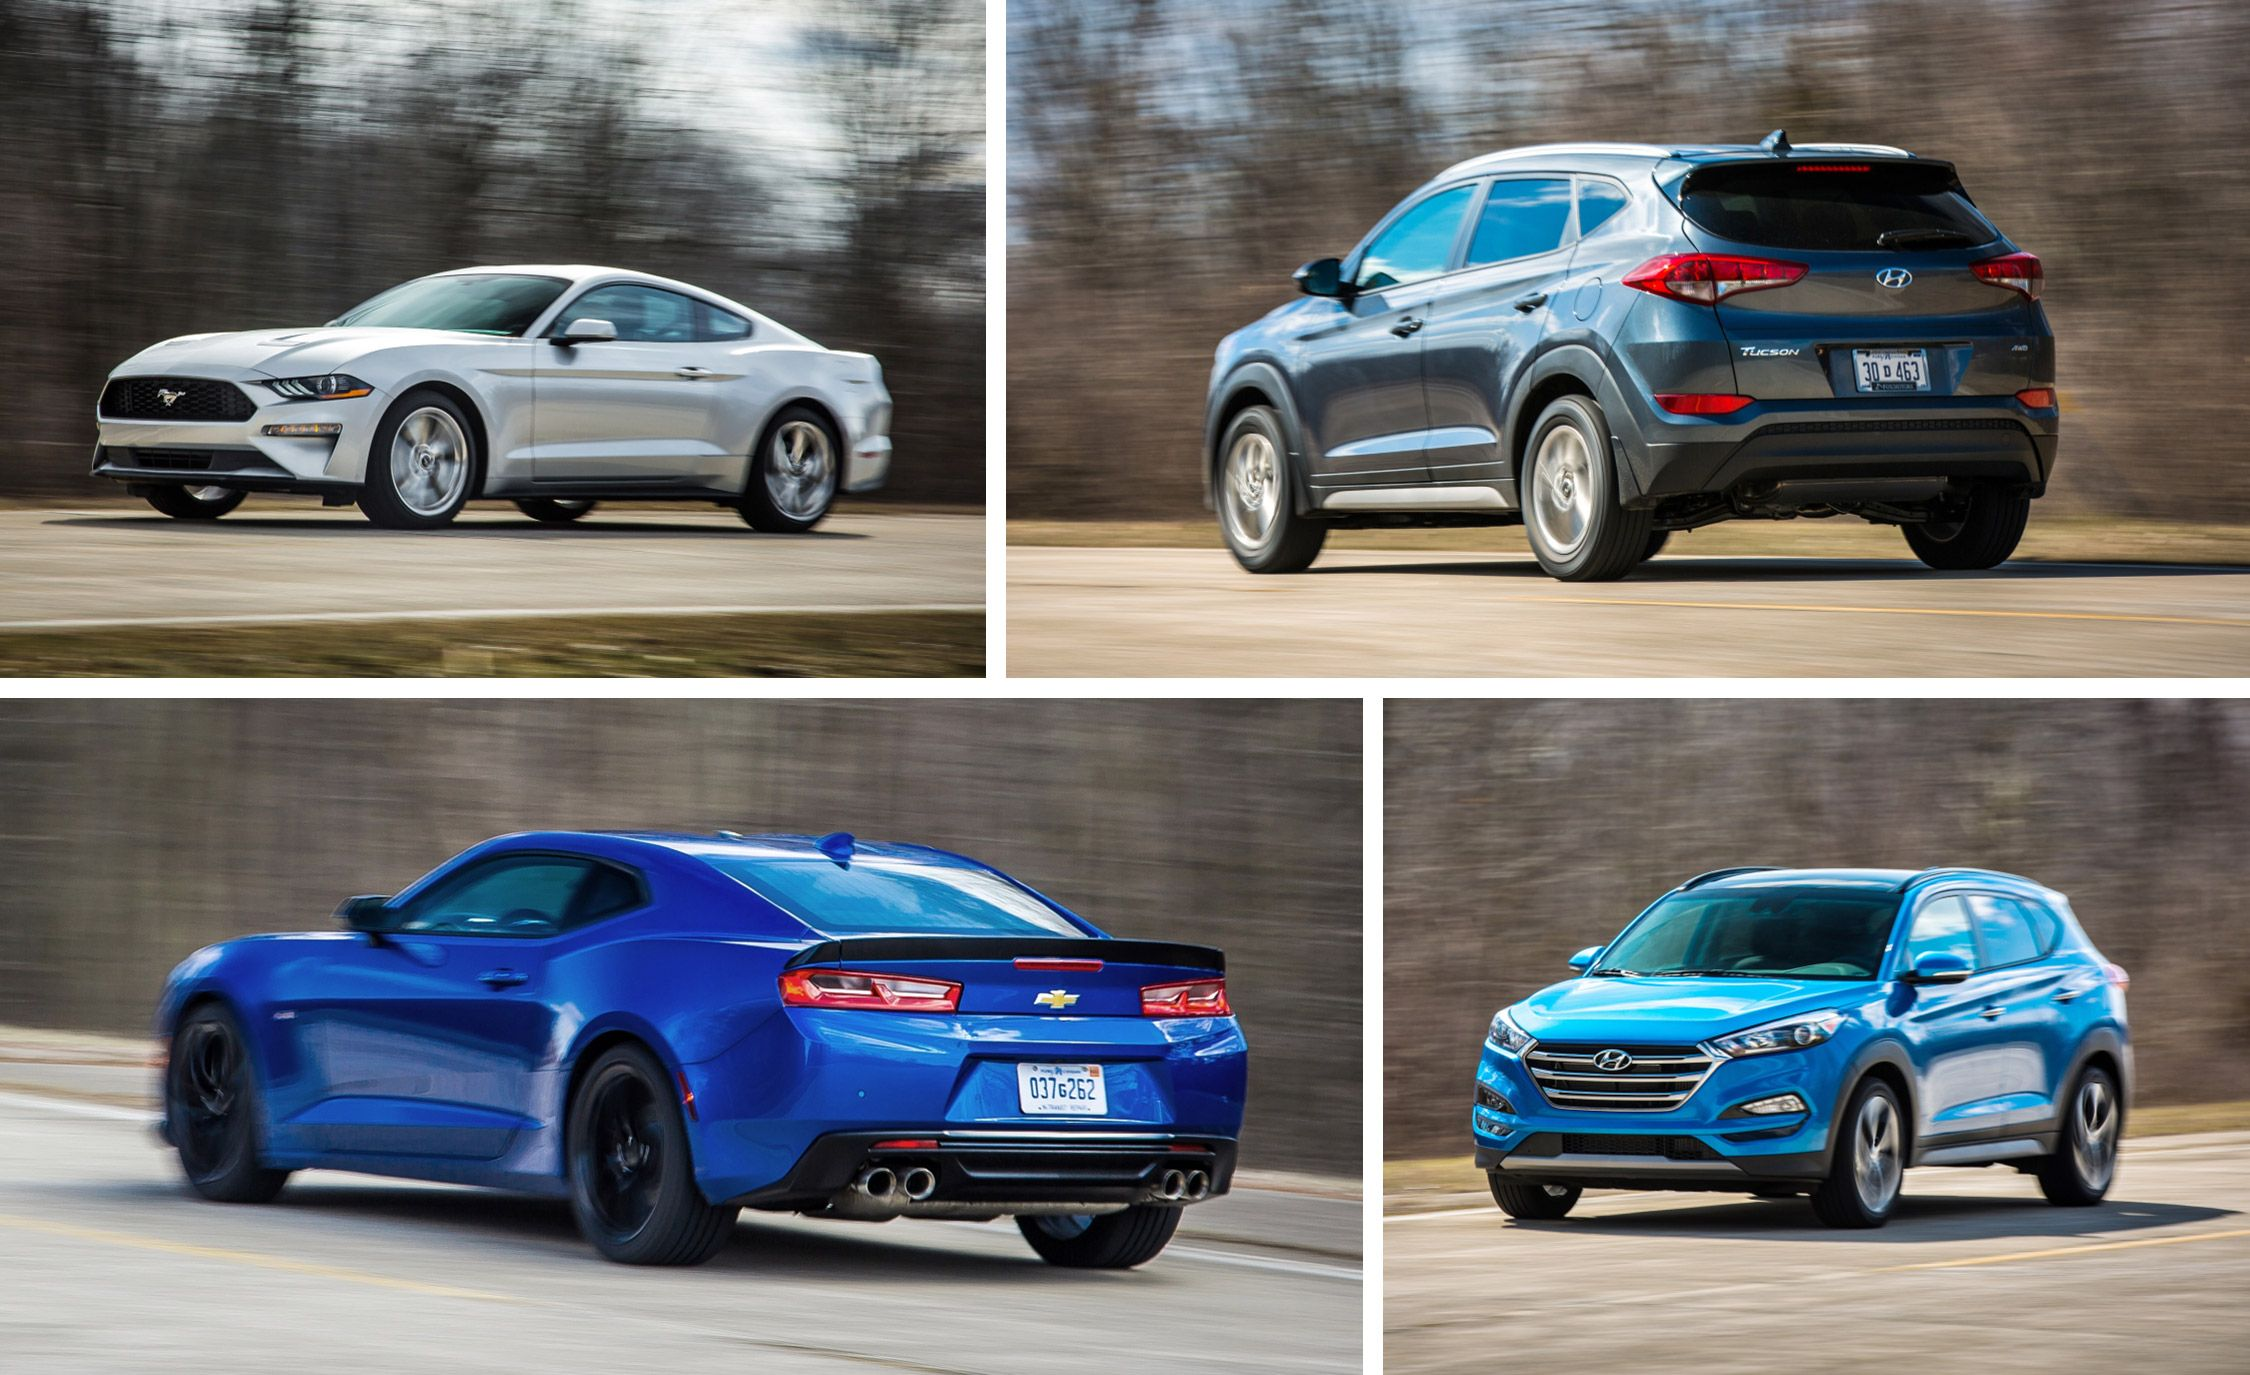 As Turbocharging Takes Over, Some Types of Vehicles Stand to Lose More Than Others